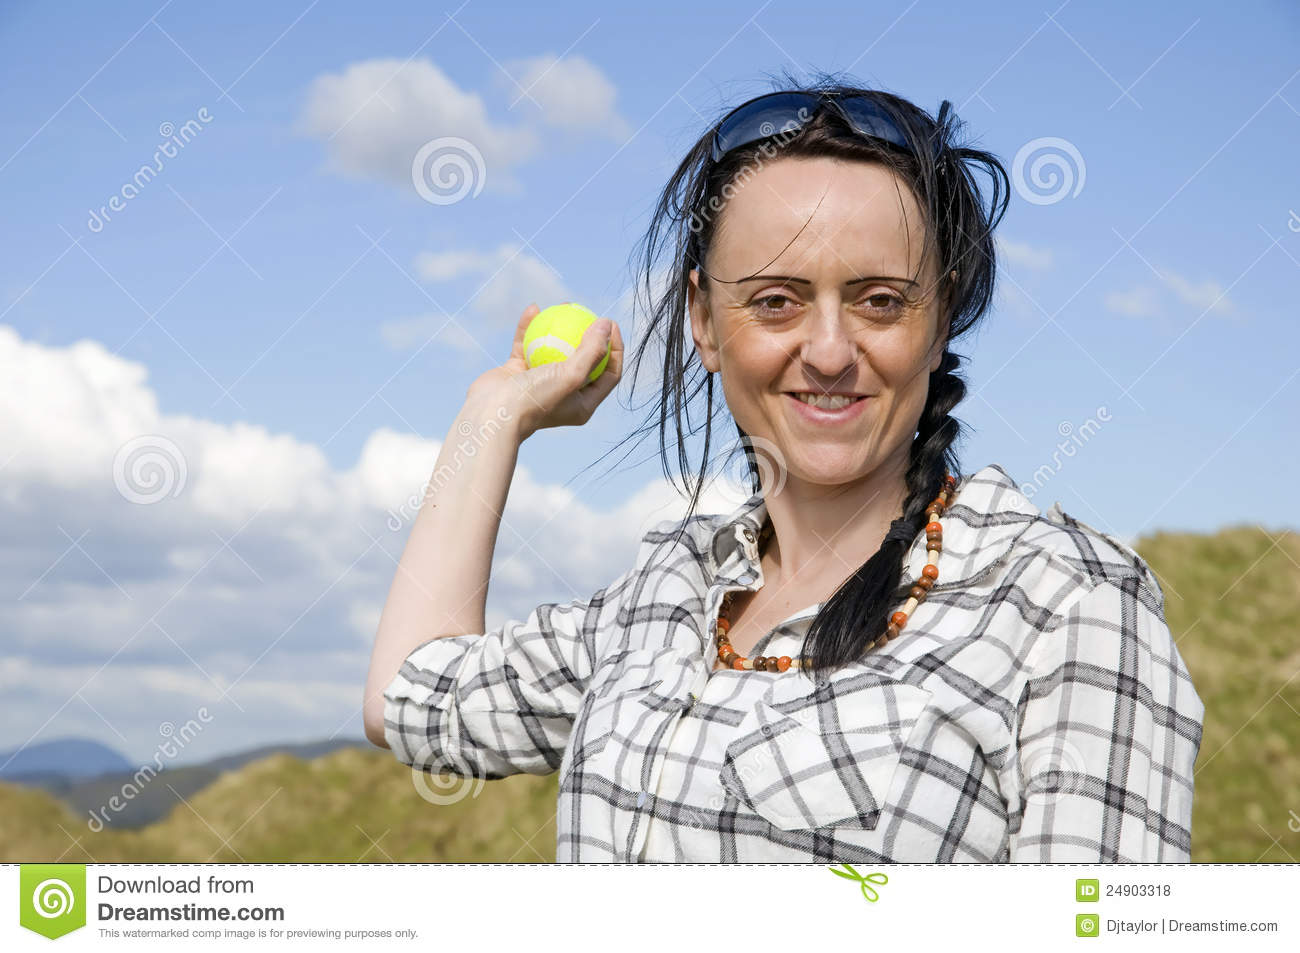 Woman throwing tennis ball stock photo. Image of happy ...